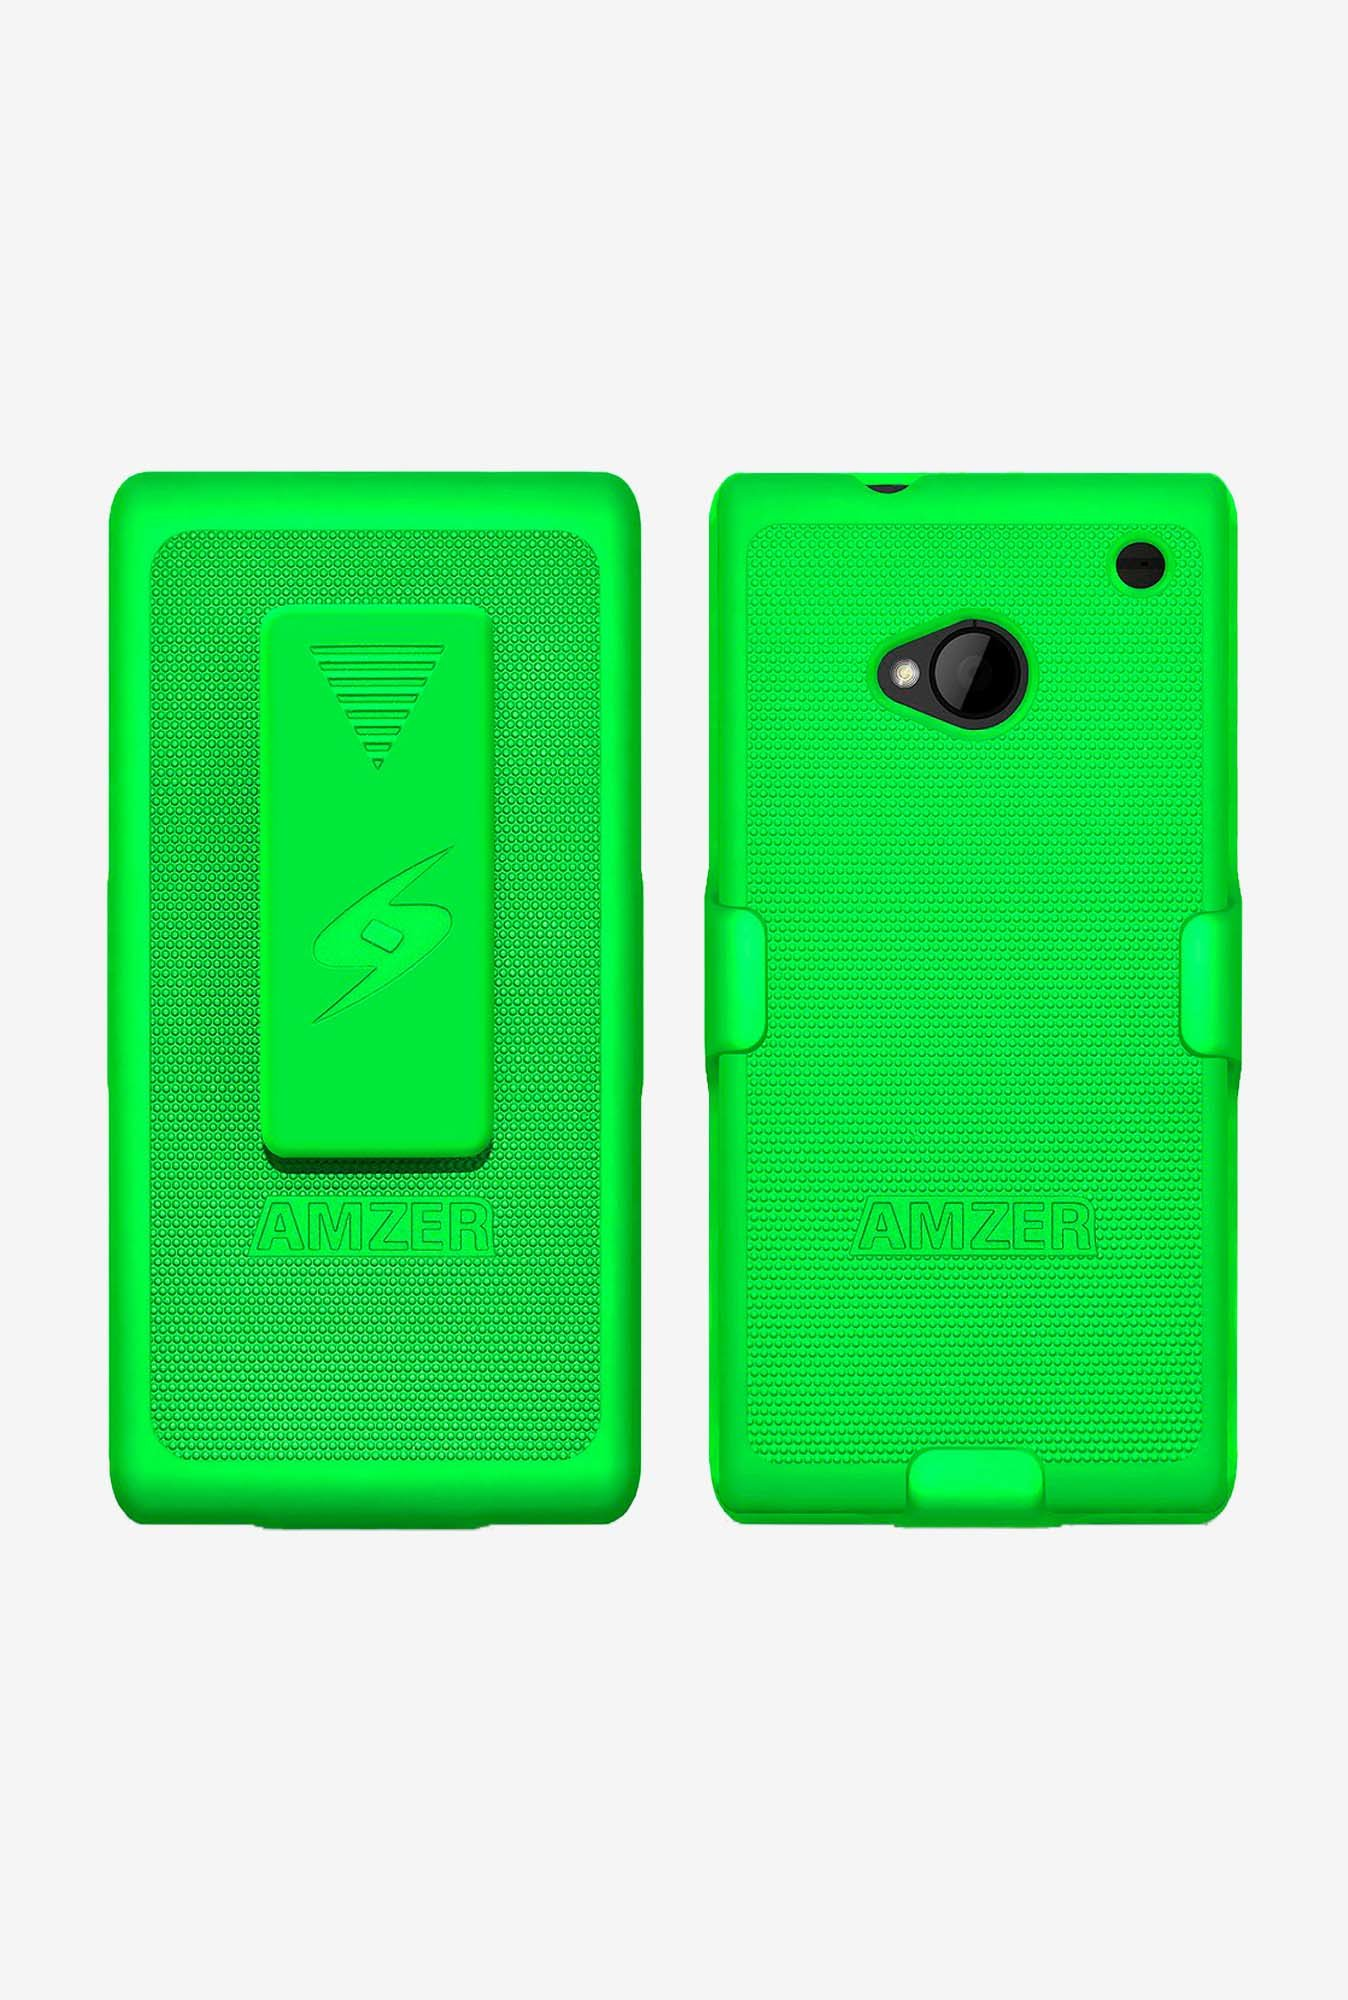 Amzer Shellster Shell Case Green for HTC One M7